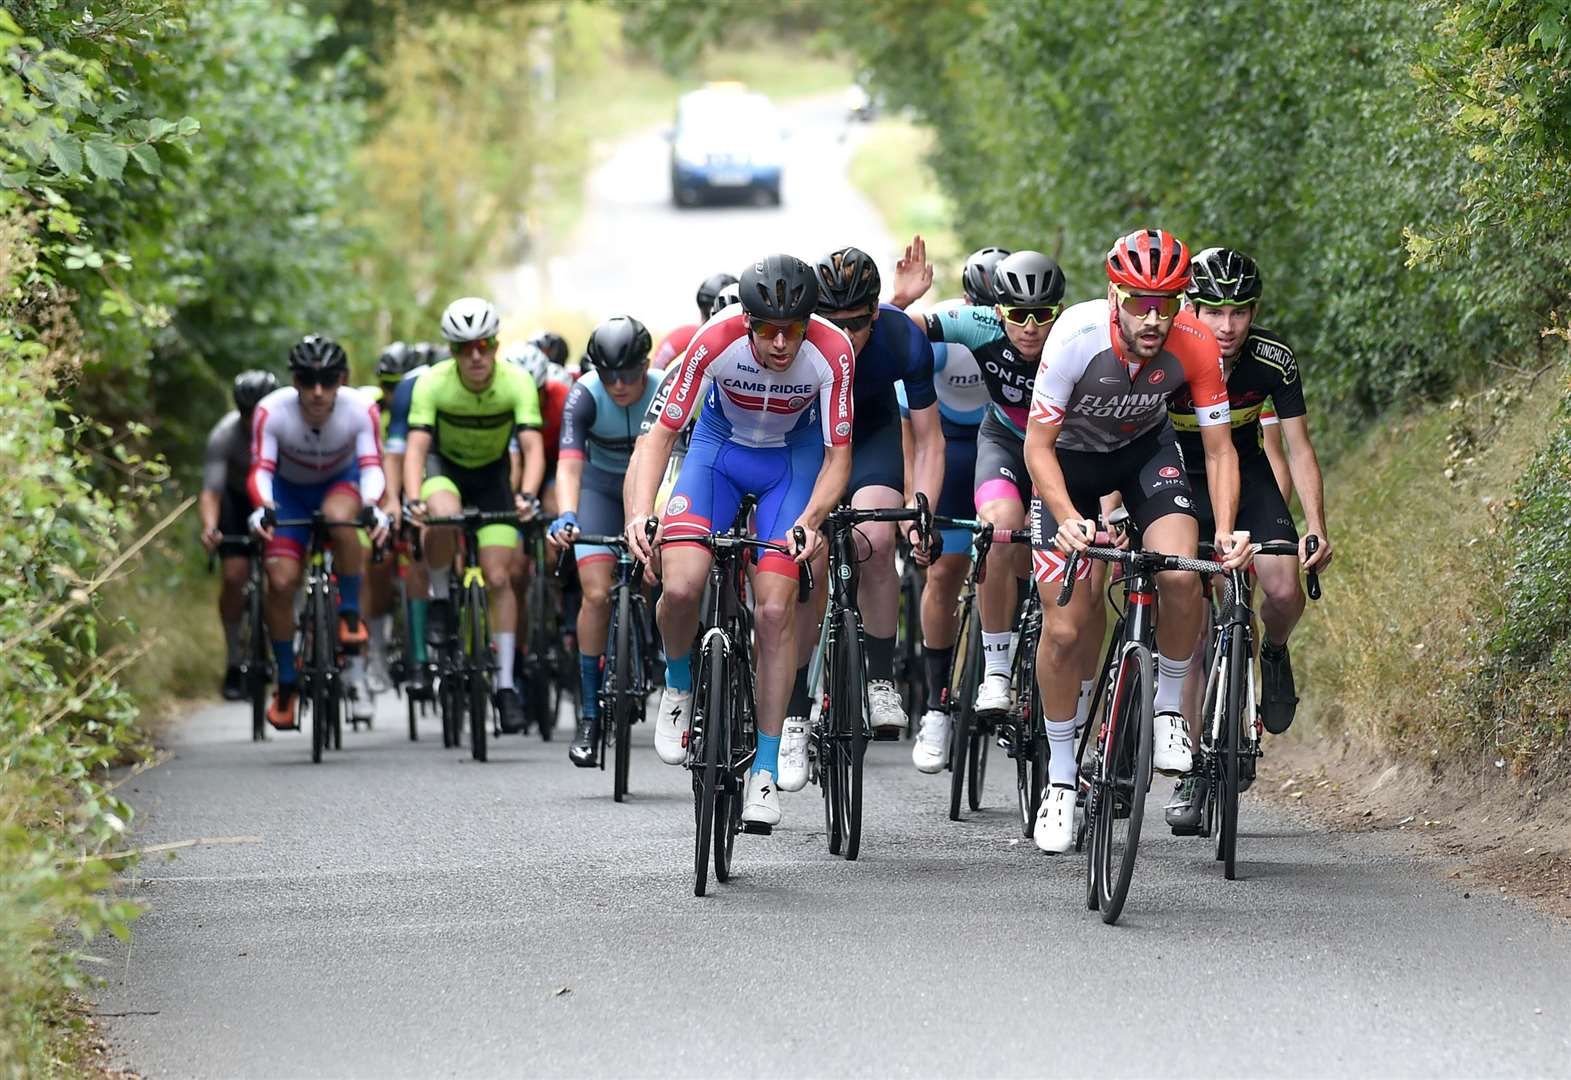 Blackmore survives late crash to win Eastern Road Race event